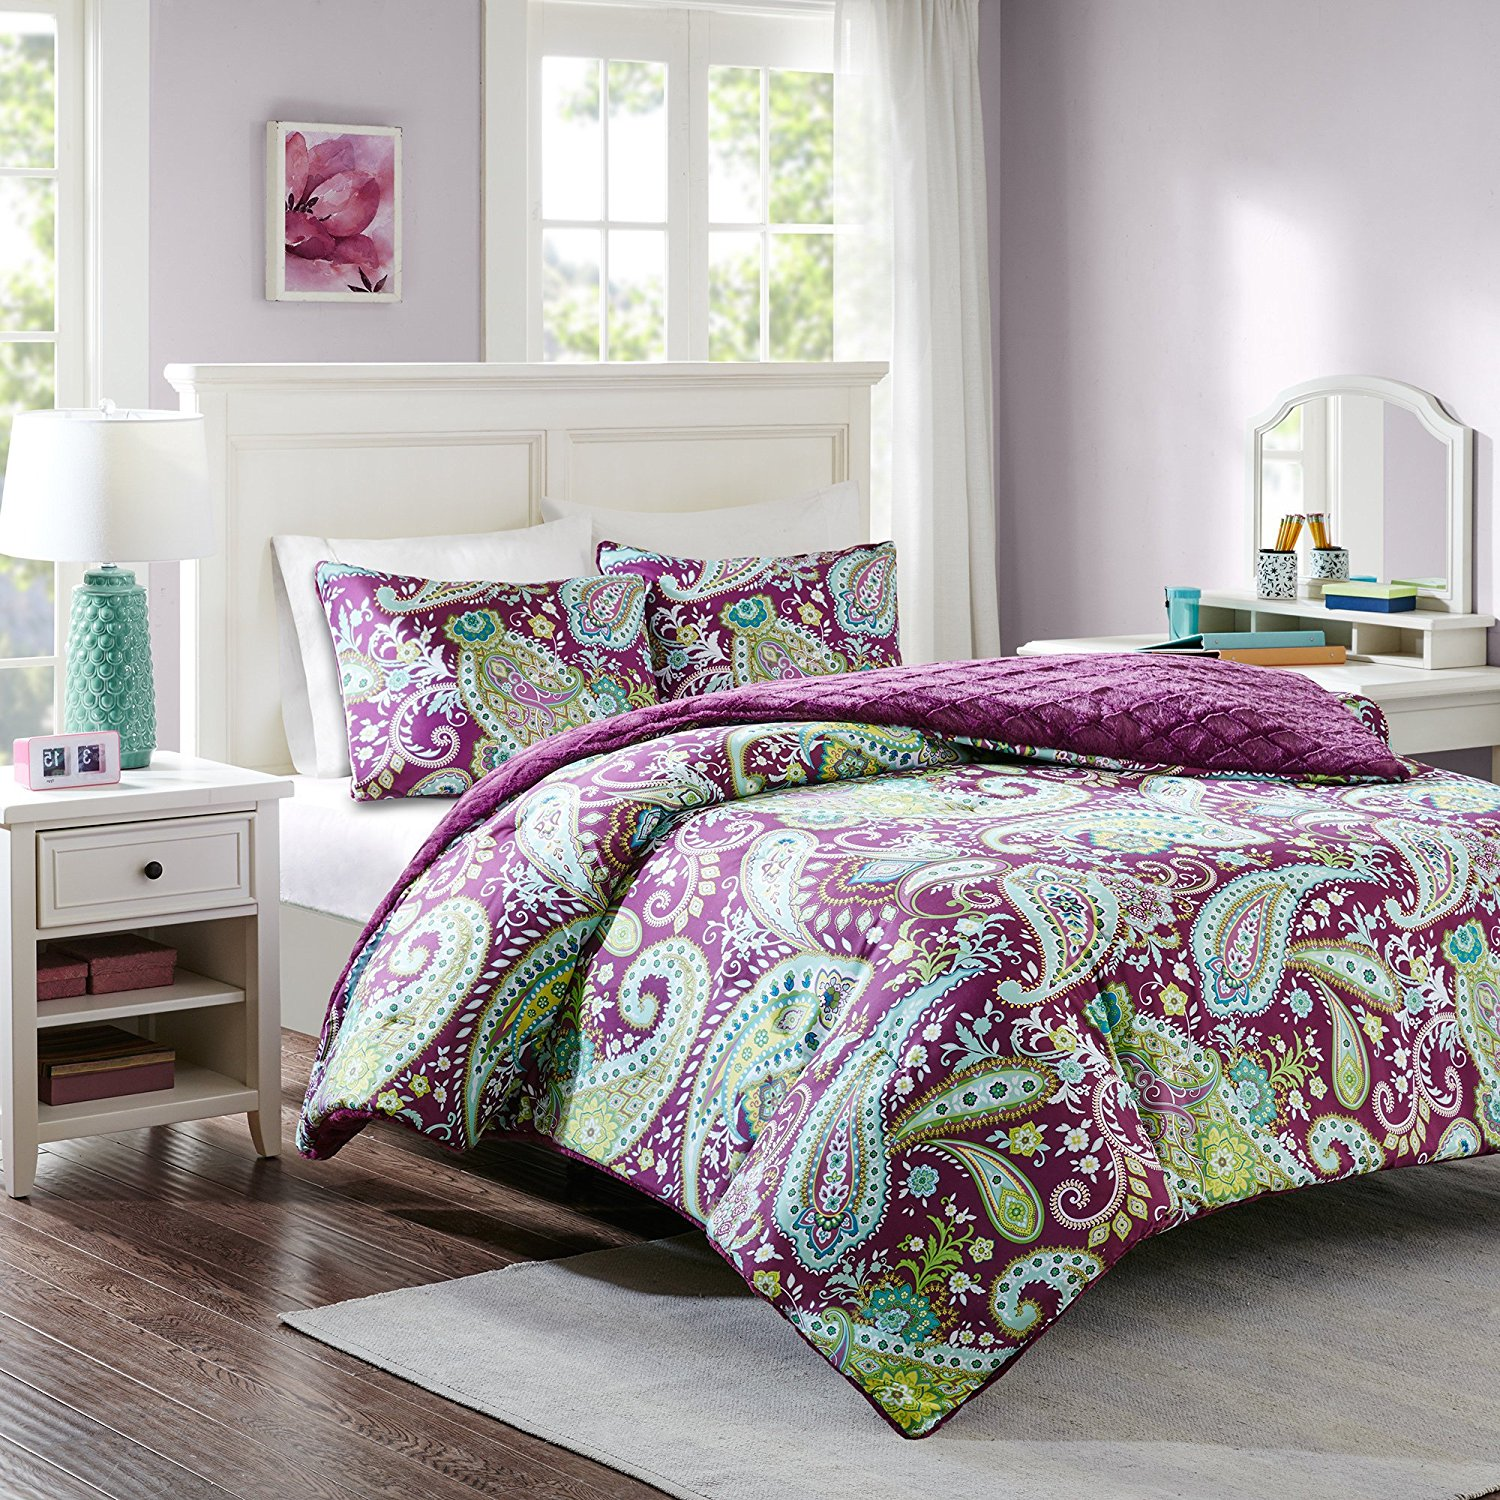 3 Piece Girls Dark Purple Green White Paisley Theme Comforter Full Queen Set, All Over Boho Scrollwork Flower Motif Bedding, Multi Floral Scroll Reversible Embossed Faux Fur Diamond Themed Pattern